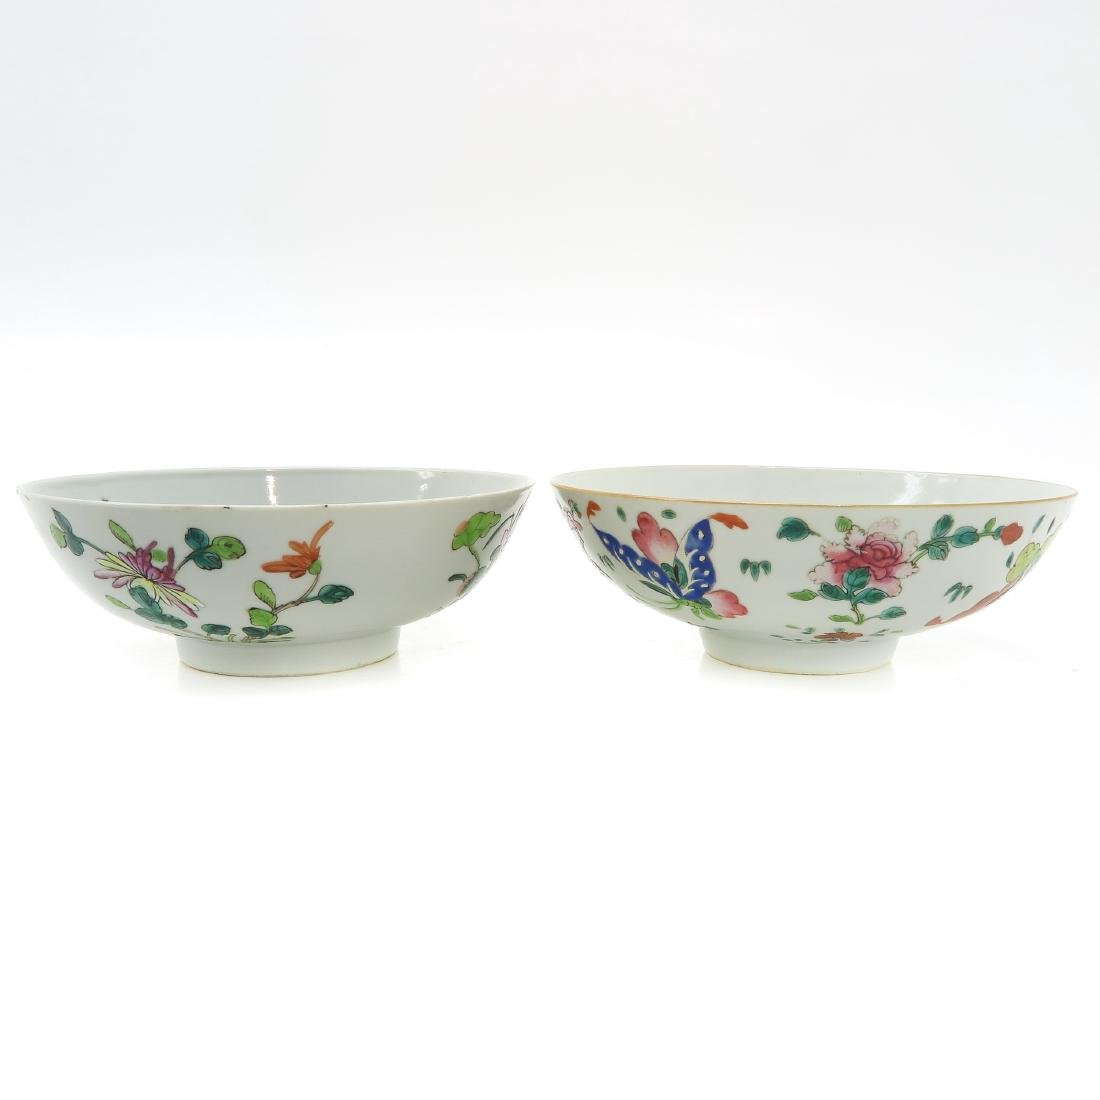 Lot of 2 Bowls - 2